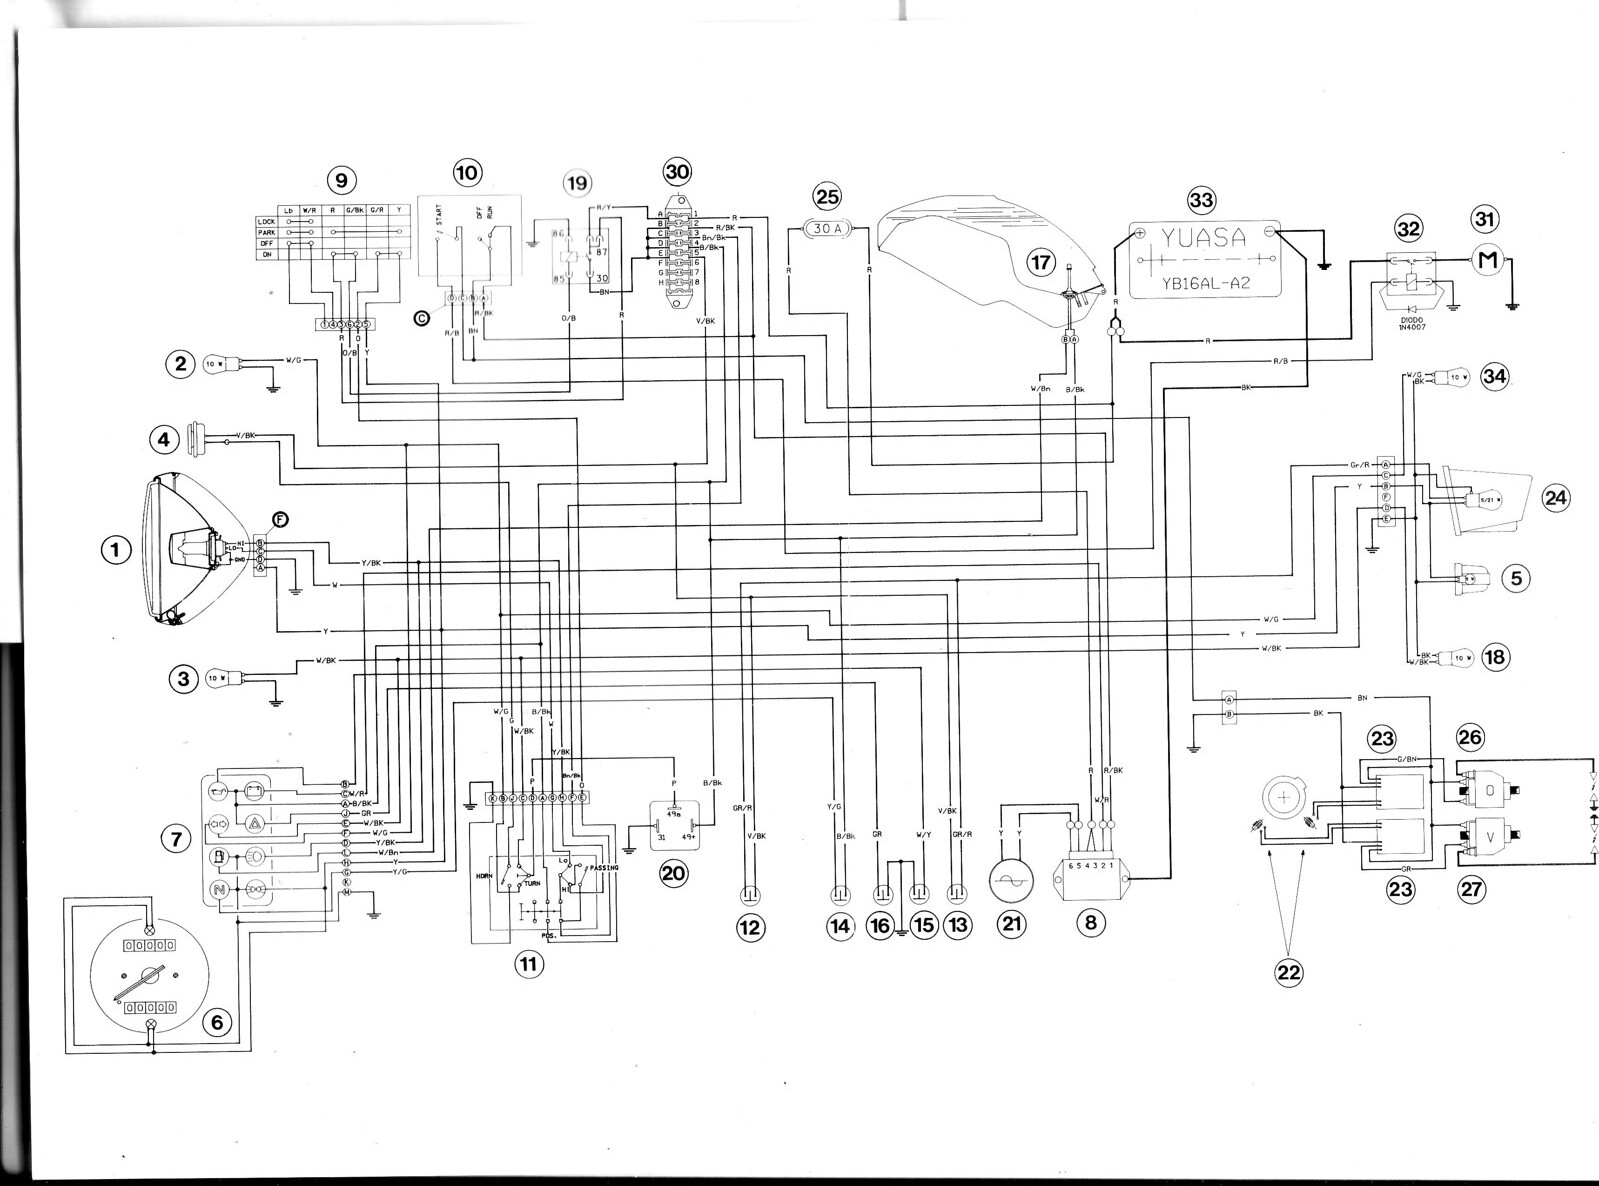 Buzzing Solenoid Relay Wiring Diagram Vespa Px150e I Have A Factory